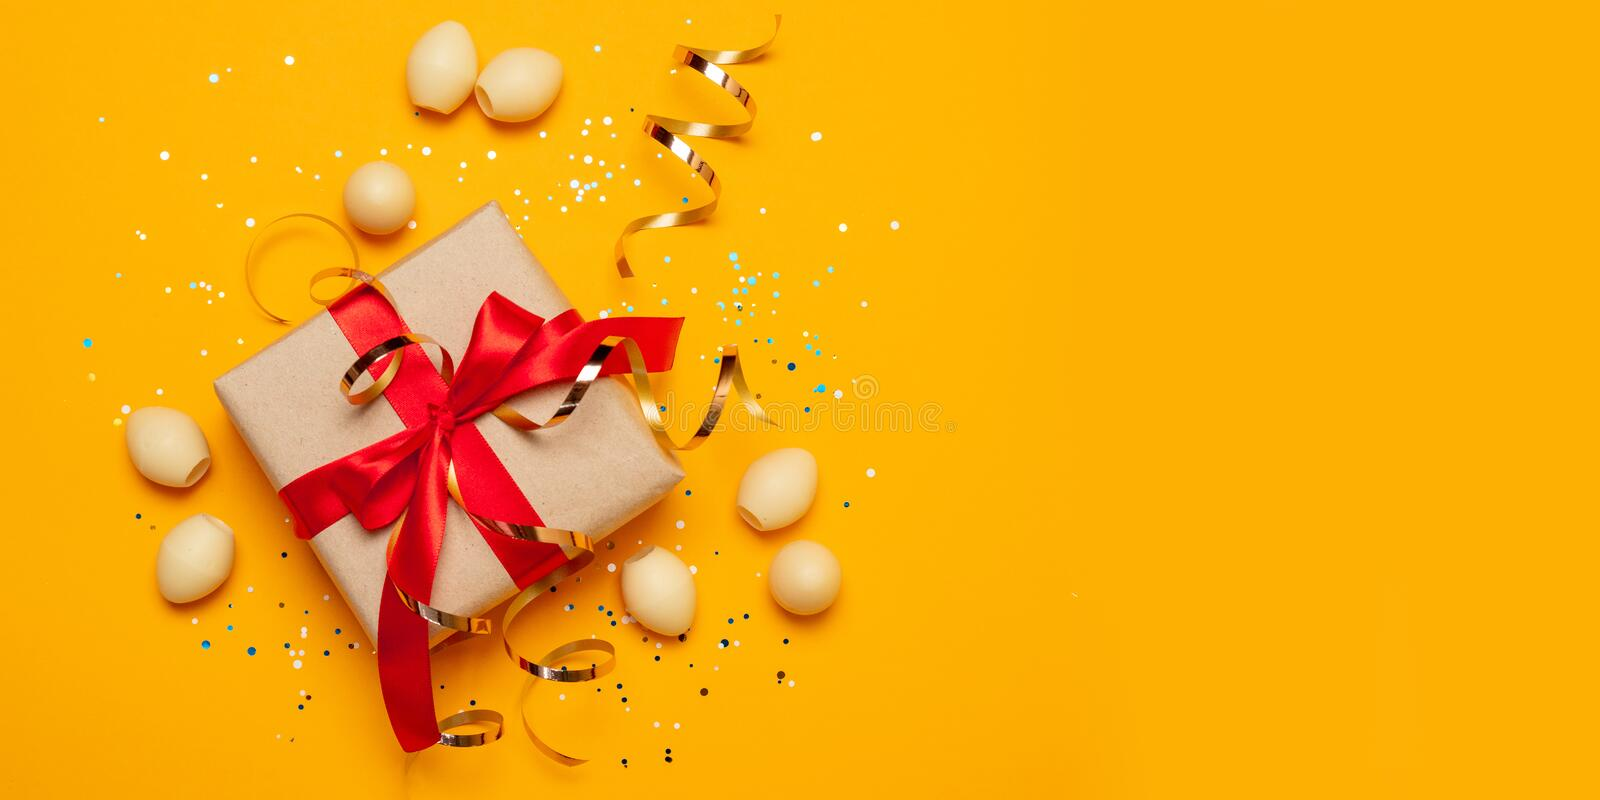 Easter concept background of gift or present box with red atlas ribbon and stars confetti on yellow background.Holiday decorations. Easter holiday decorations royalty free stock photography